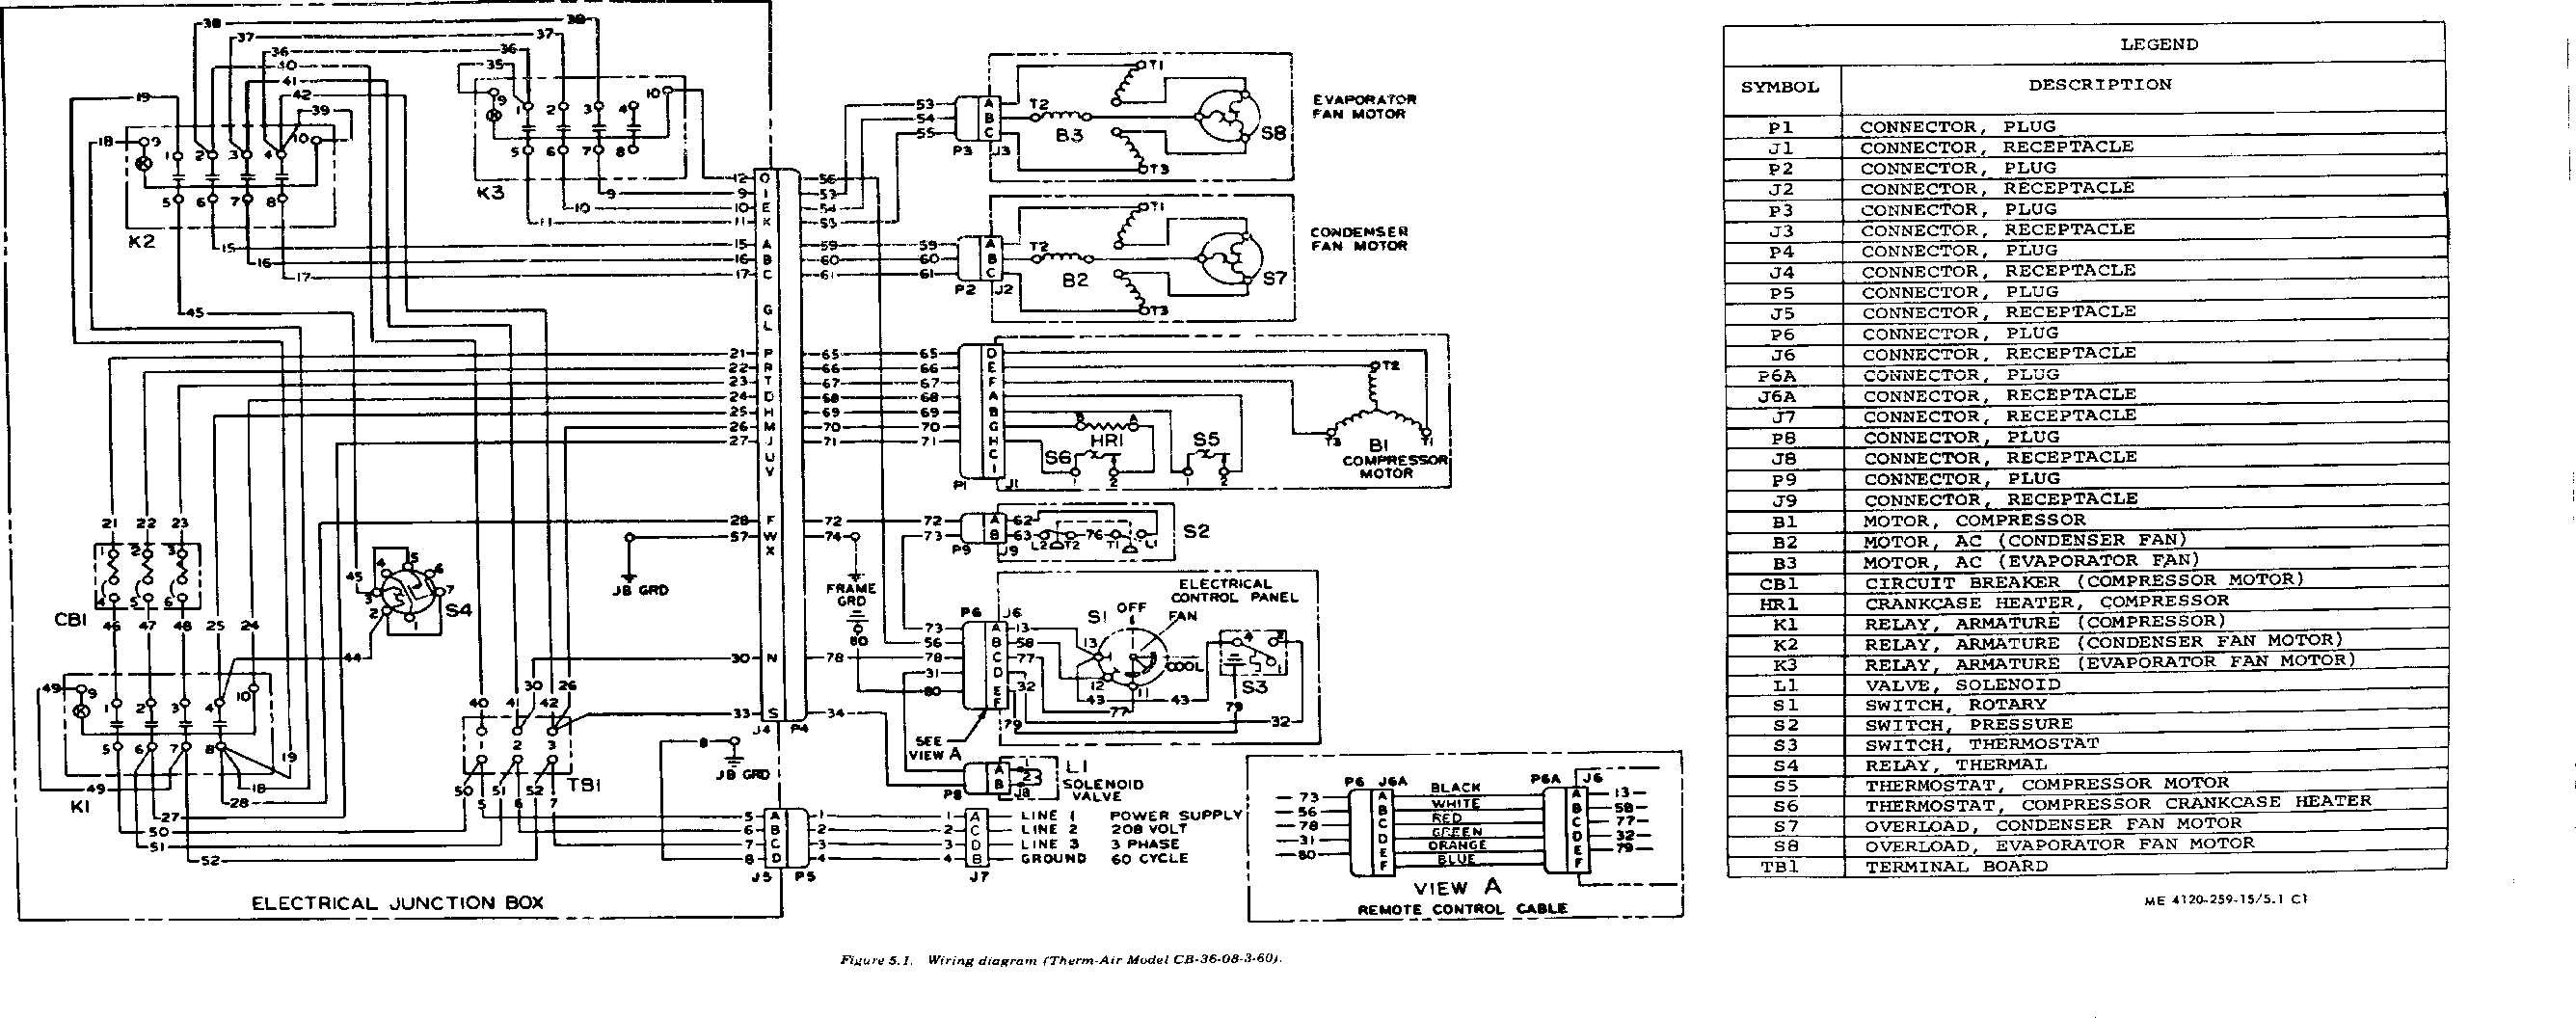 Package Ac Unit Wiring Diagram from wholefoodsonabudget.com